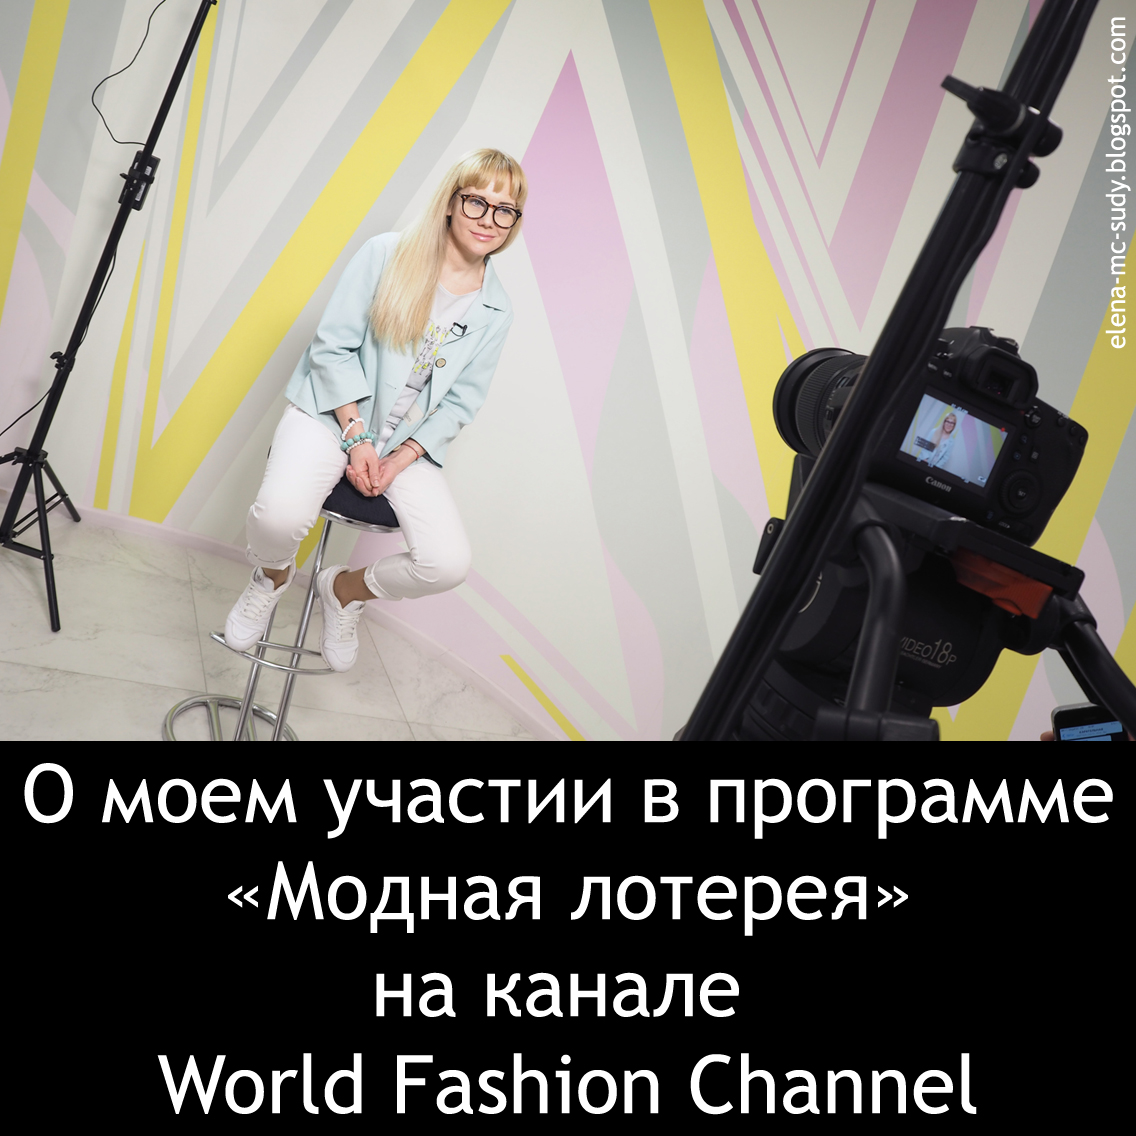 Блогер Елена Максуди в программе Модная лотерея на телеканале World Fashion